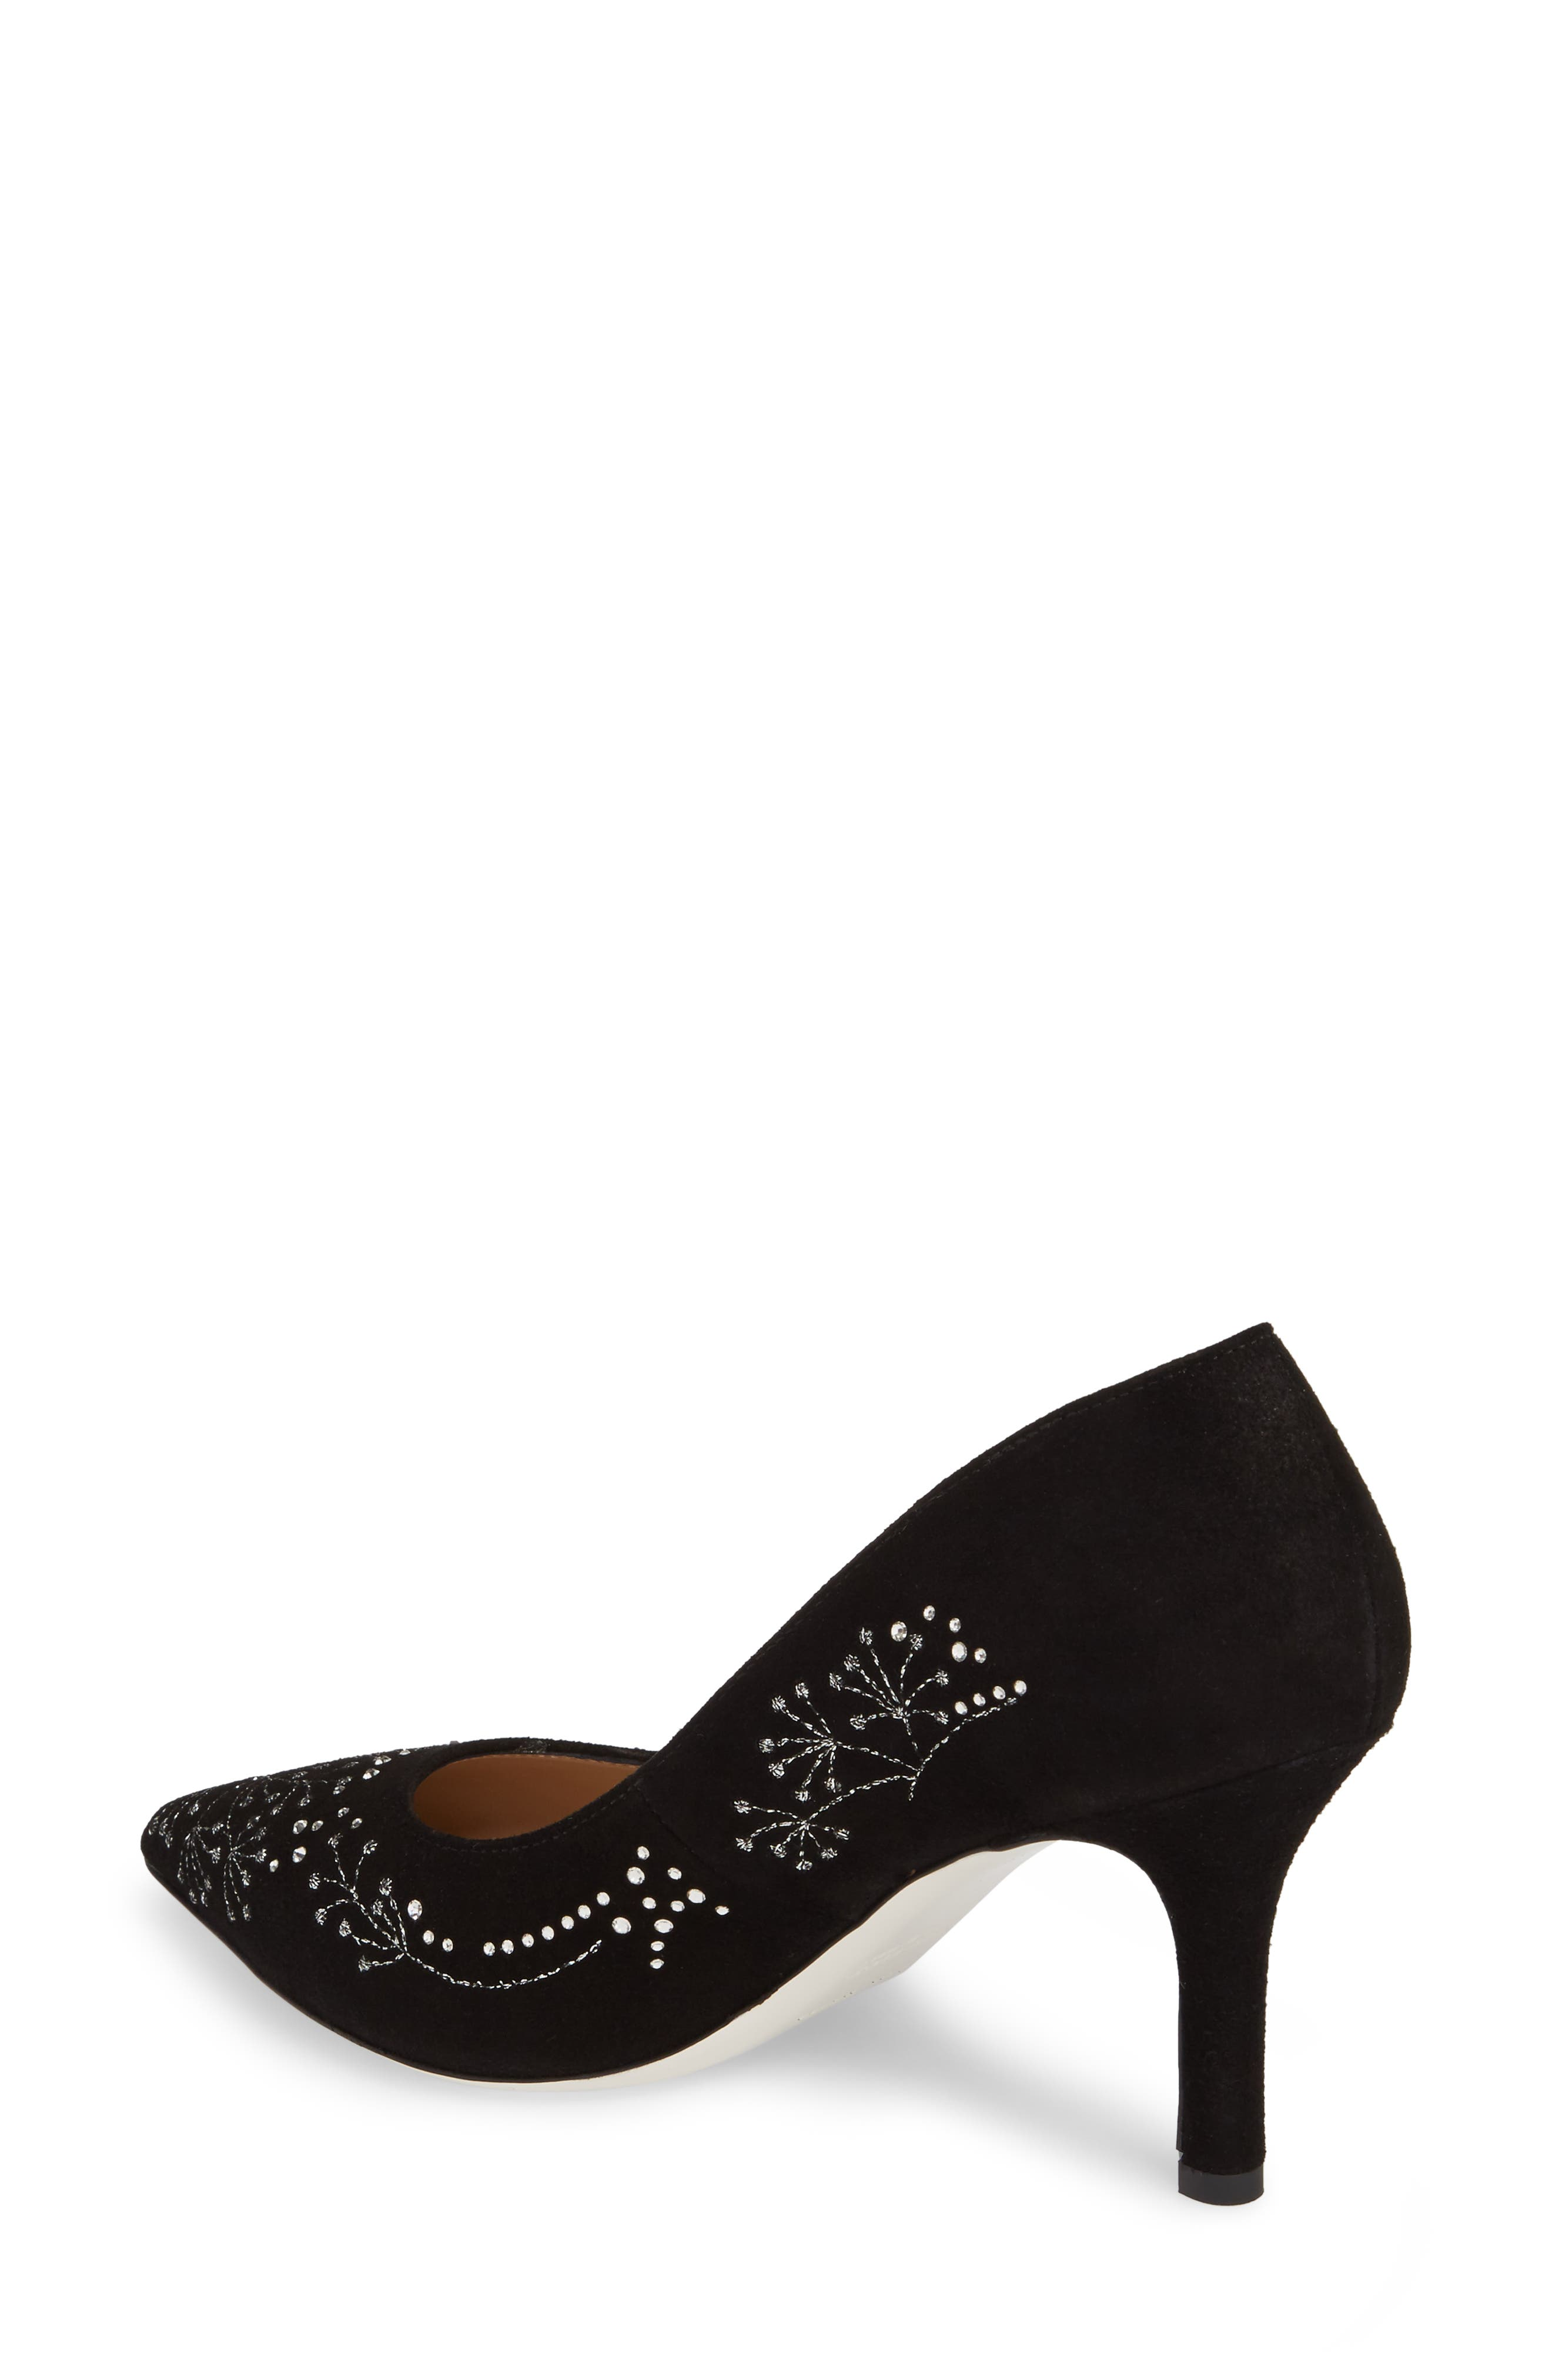 Carla Crystal Embellished Pump,                             Alternate thumbnail 2, color,                             Onyx Suede